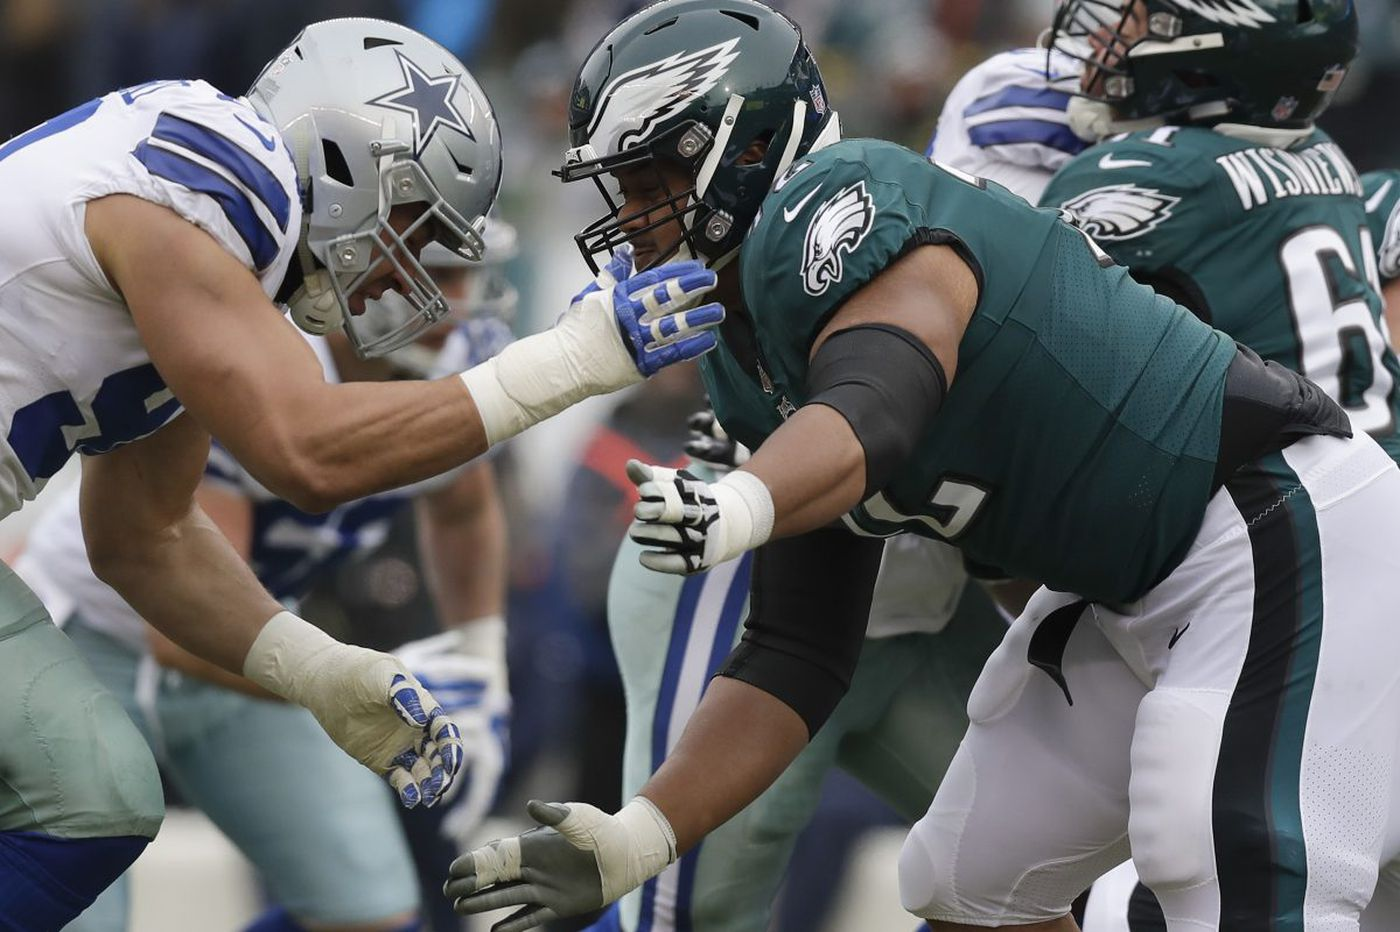 Day of rest for Eagles, but that was only one of the reasons they lost to Cowboys | Domowitch